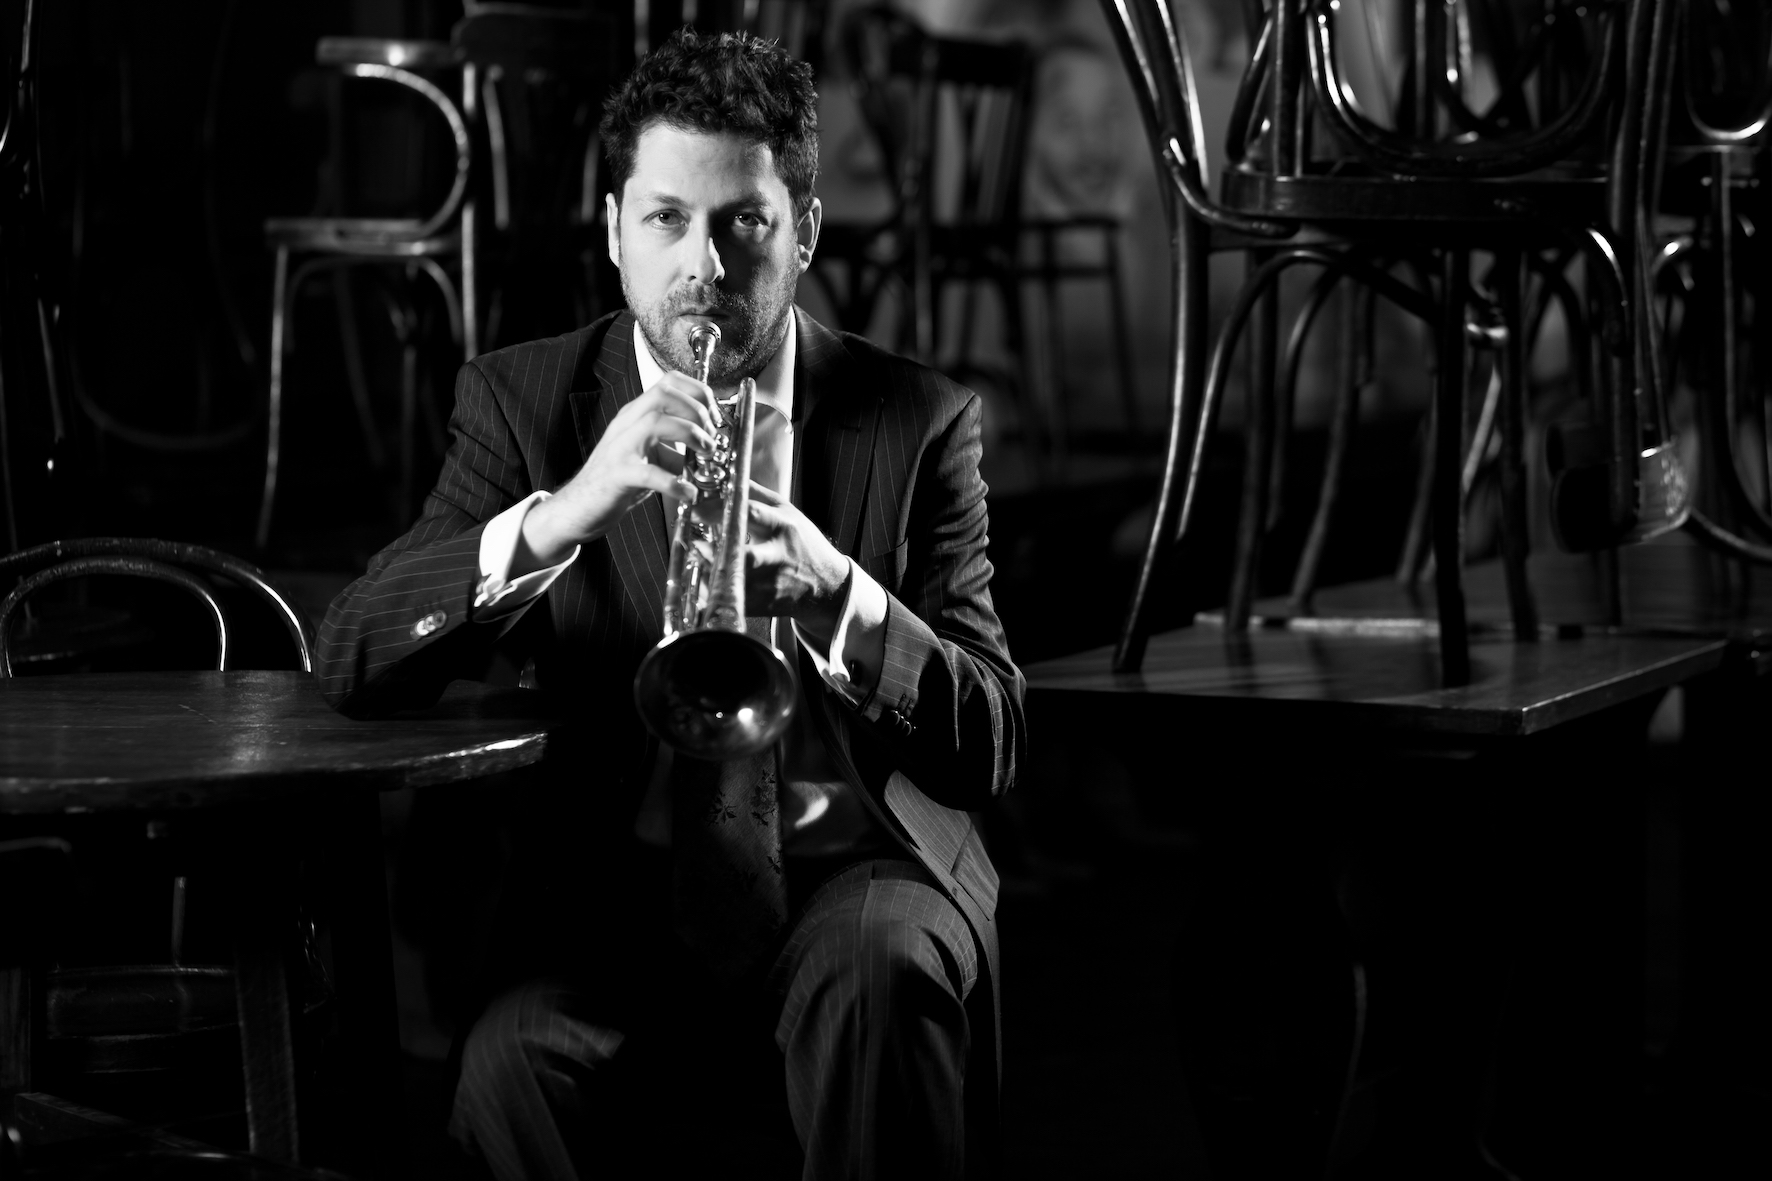 BRANT TILDS - JAZZDOOR 7PM / MUSIC 8.30PM£10 / £9 / £0 (BK)EMAIL TO RESERVE